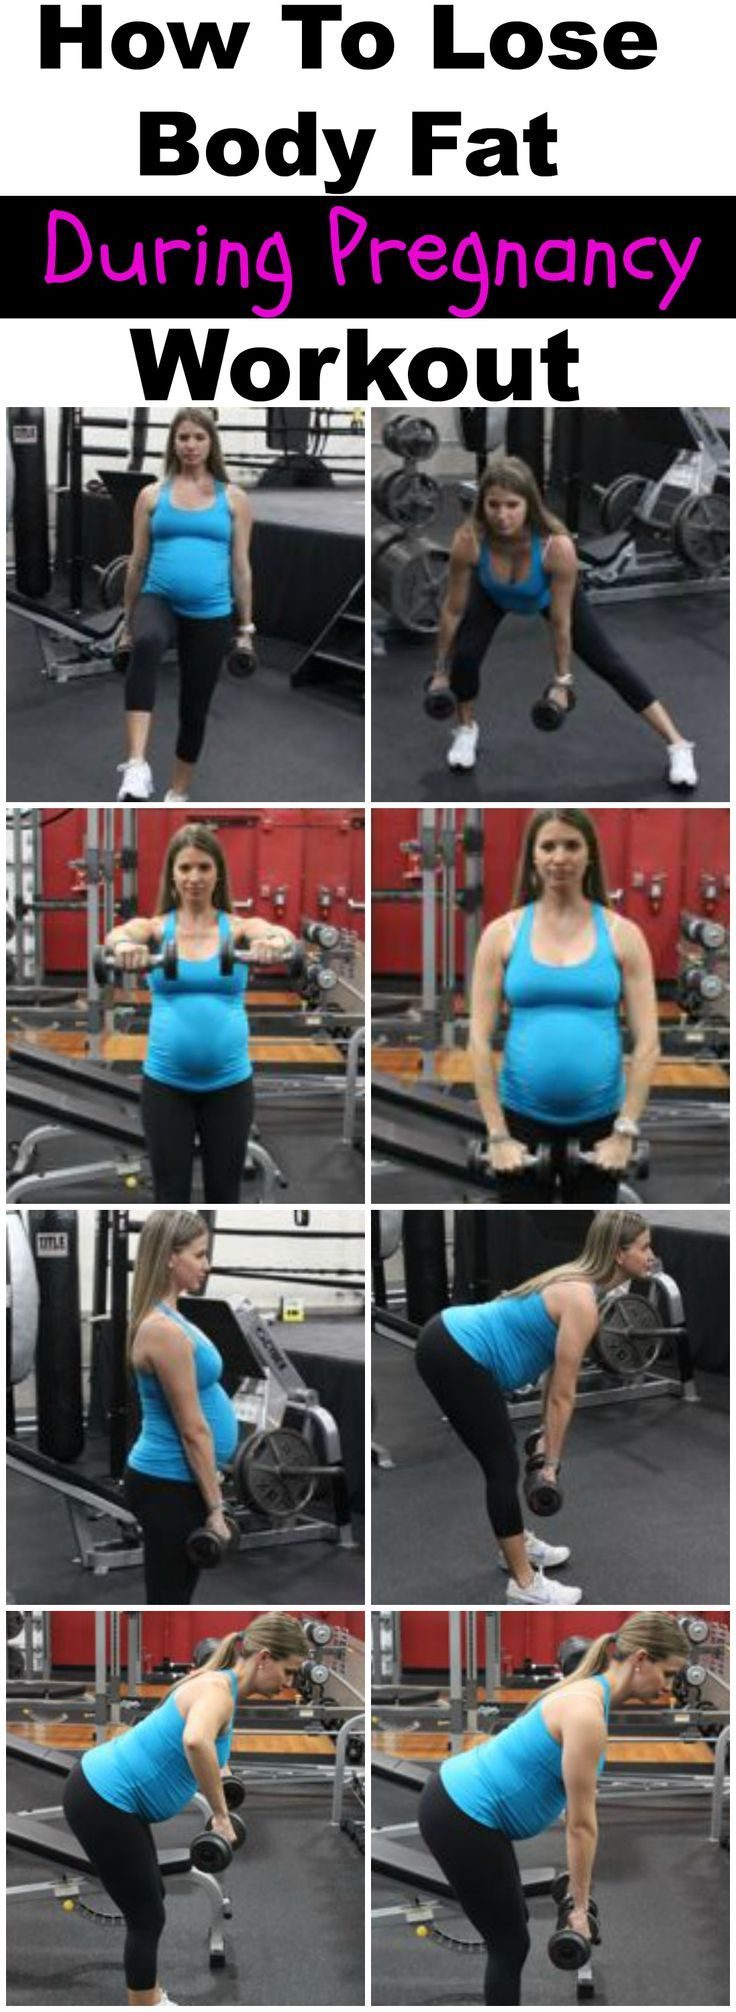 How to lose body fat during pregnancy and get toned.   Workout at home included.  Pregnancy safe. (scheduled via http://www.tailwindapp.com?utm_source=pinterest&utm_medium=twpin)